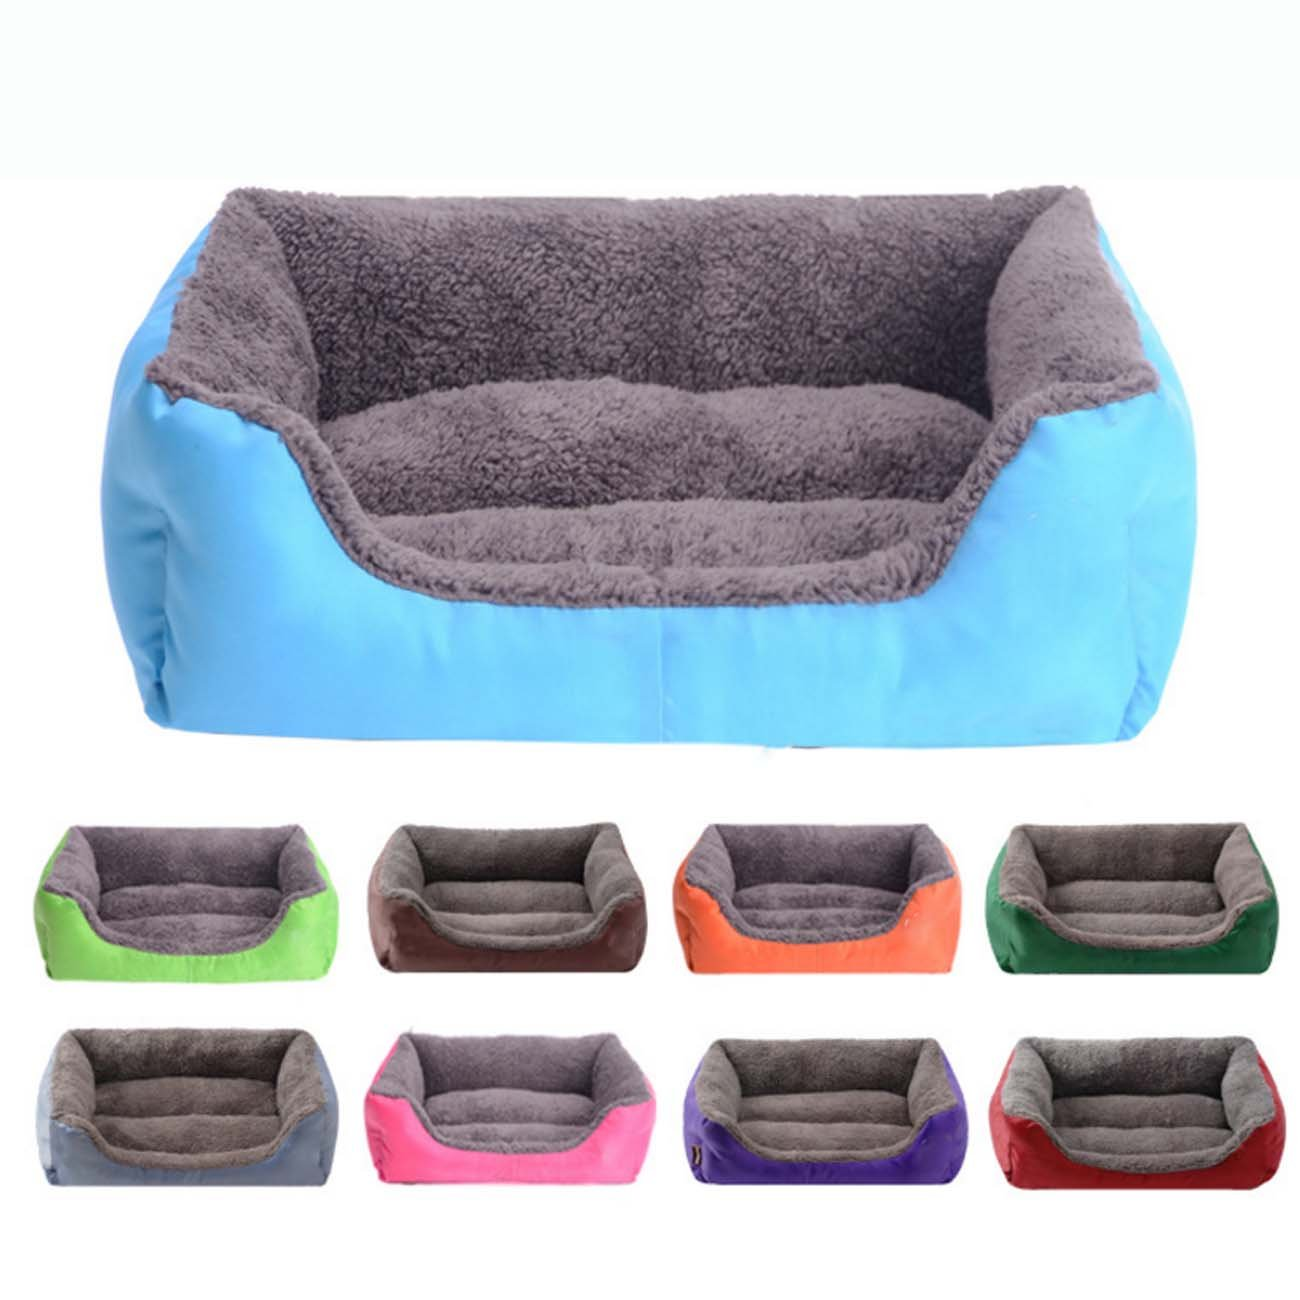 Purple XL Purple XL Large Pet Bed, Kitten Washable Pet Comfortable Self Warming Nest Mat Cat Pad Waterloo Rectangle Puppy Pet Dog Bed Cushion House with Soft Fleece Lining (color   Purple, Size   XL)